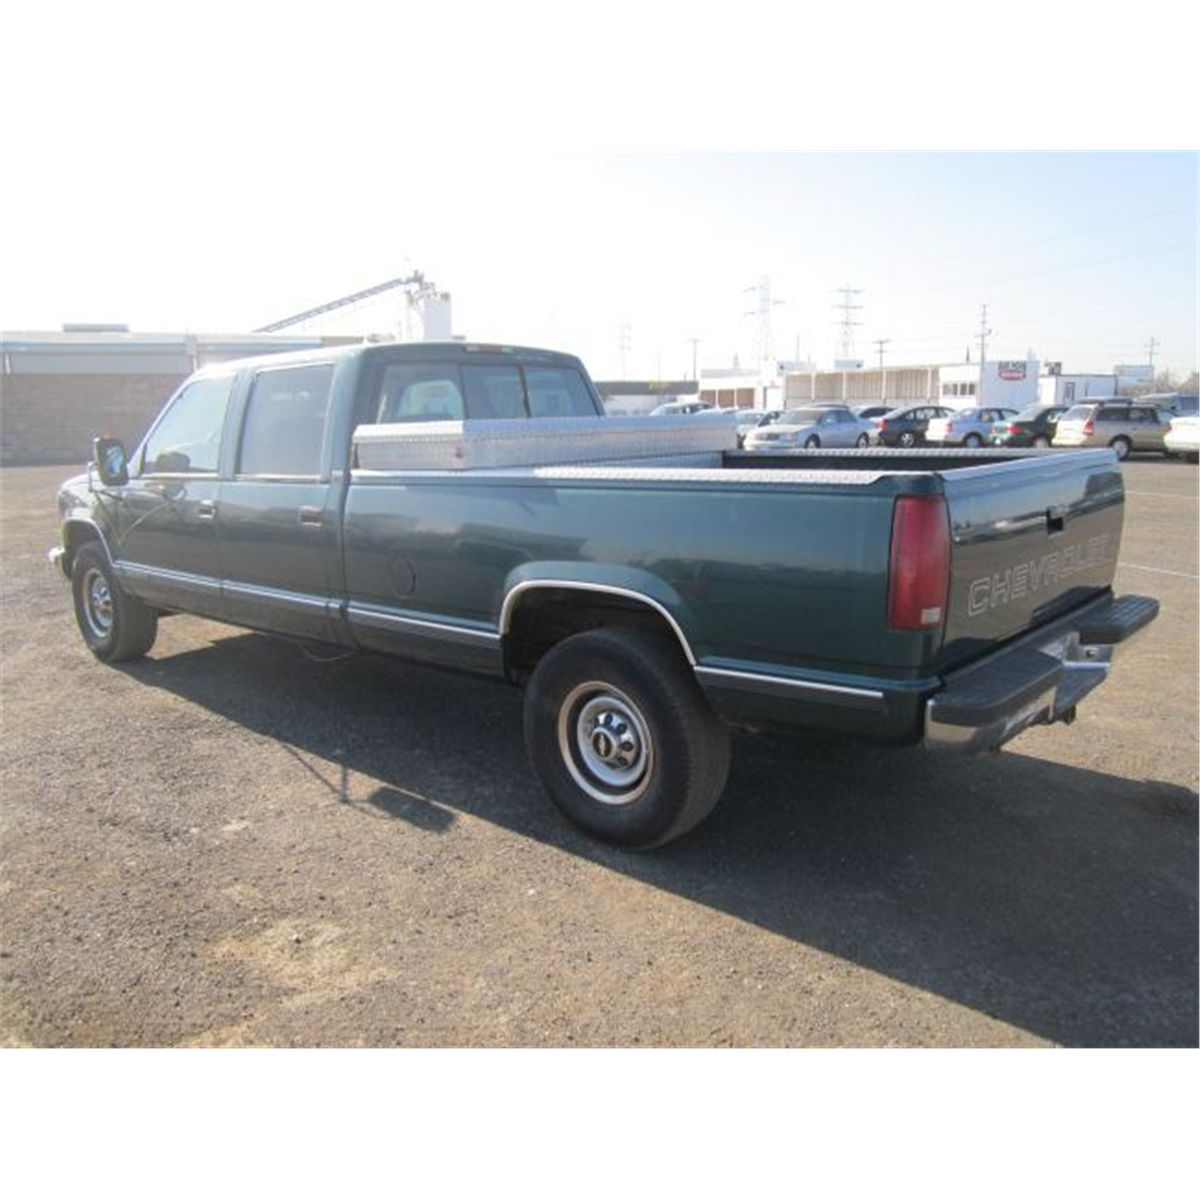 1997 Chevrolet 3500 Extended Cab Transmission: 1997 Chevrolet 3500 Cheyenne Crew Cab Pickup Truck